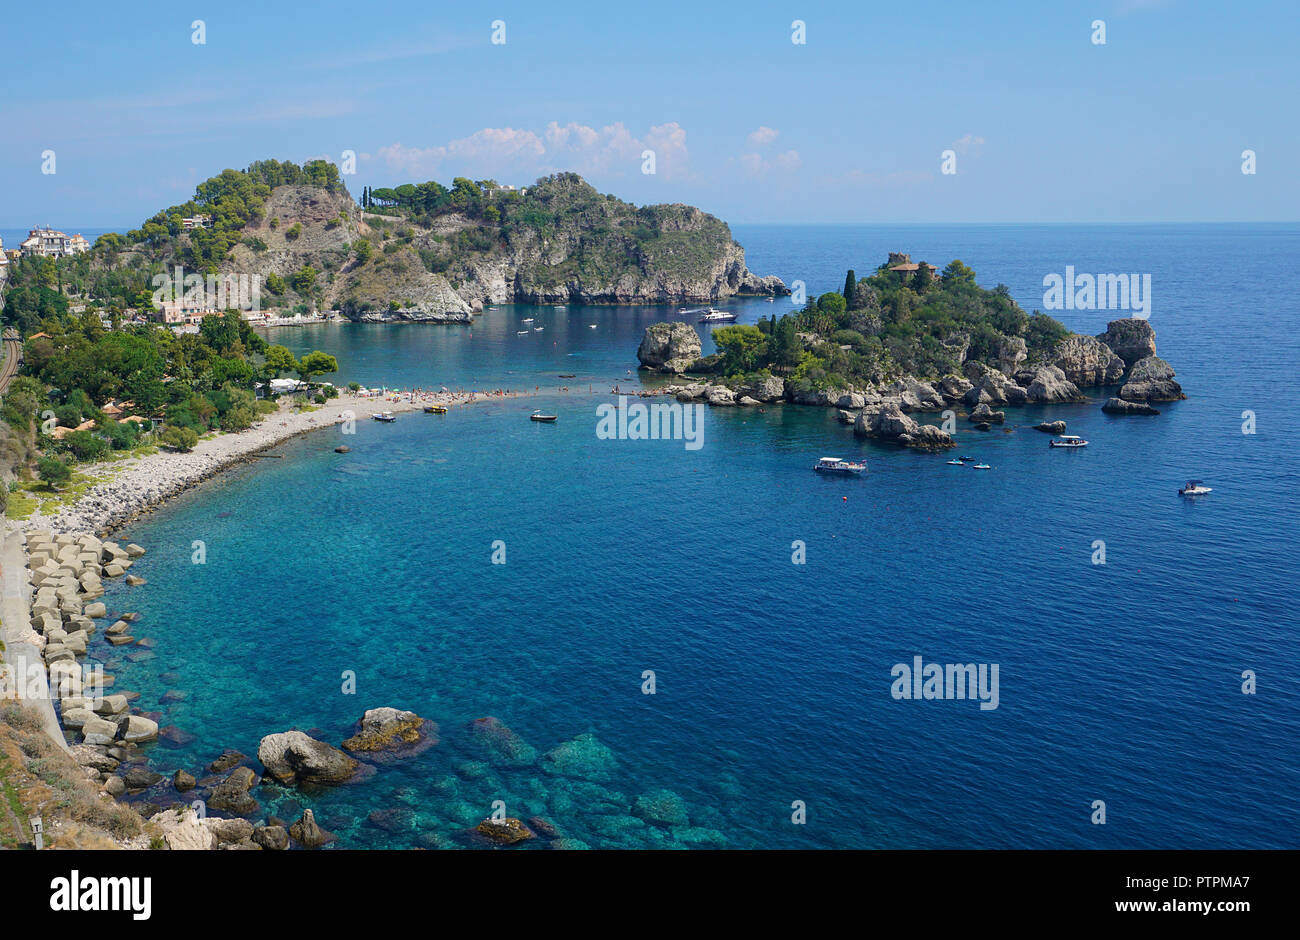 Isola Bella, beautiful tiny island and one of the landmarks of Taormina, Sicily, Italy - Stock Image